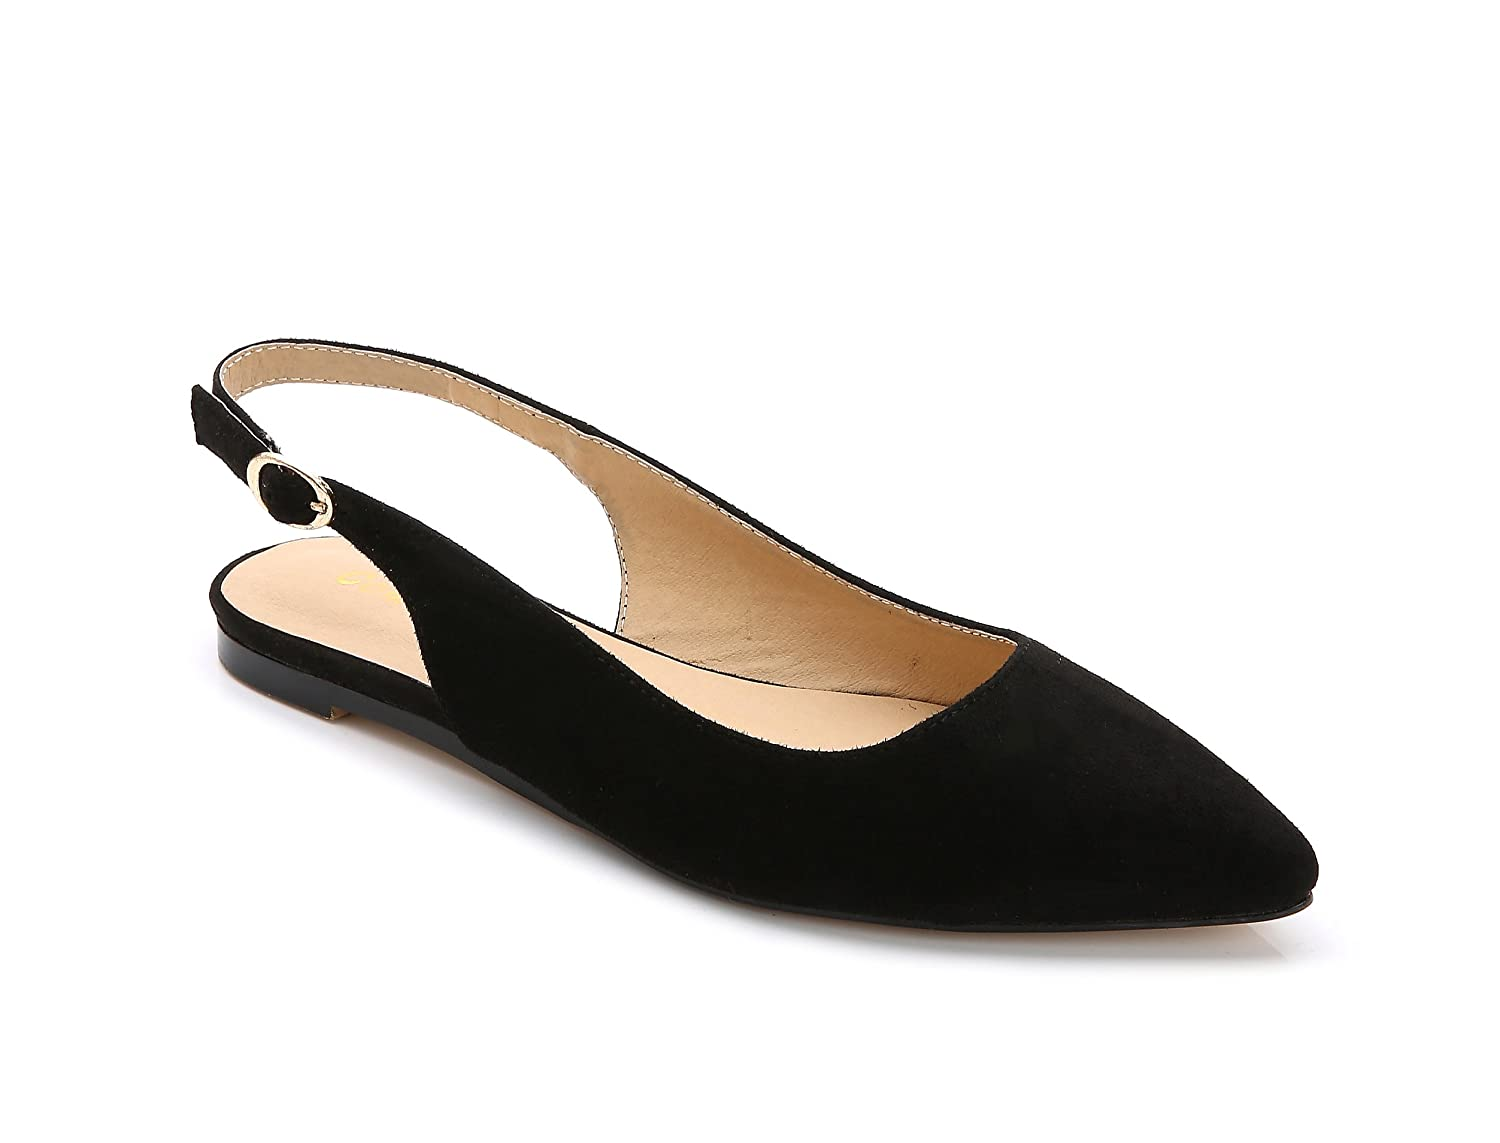 Retro Vintage Flats and Low Heel Shoes ComeShun Womens Shoes Closed Pointed Toe Flats Slingback Dress Pumps $25.99 AT vintagedancer.com